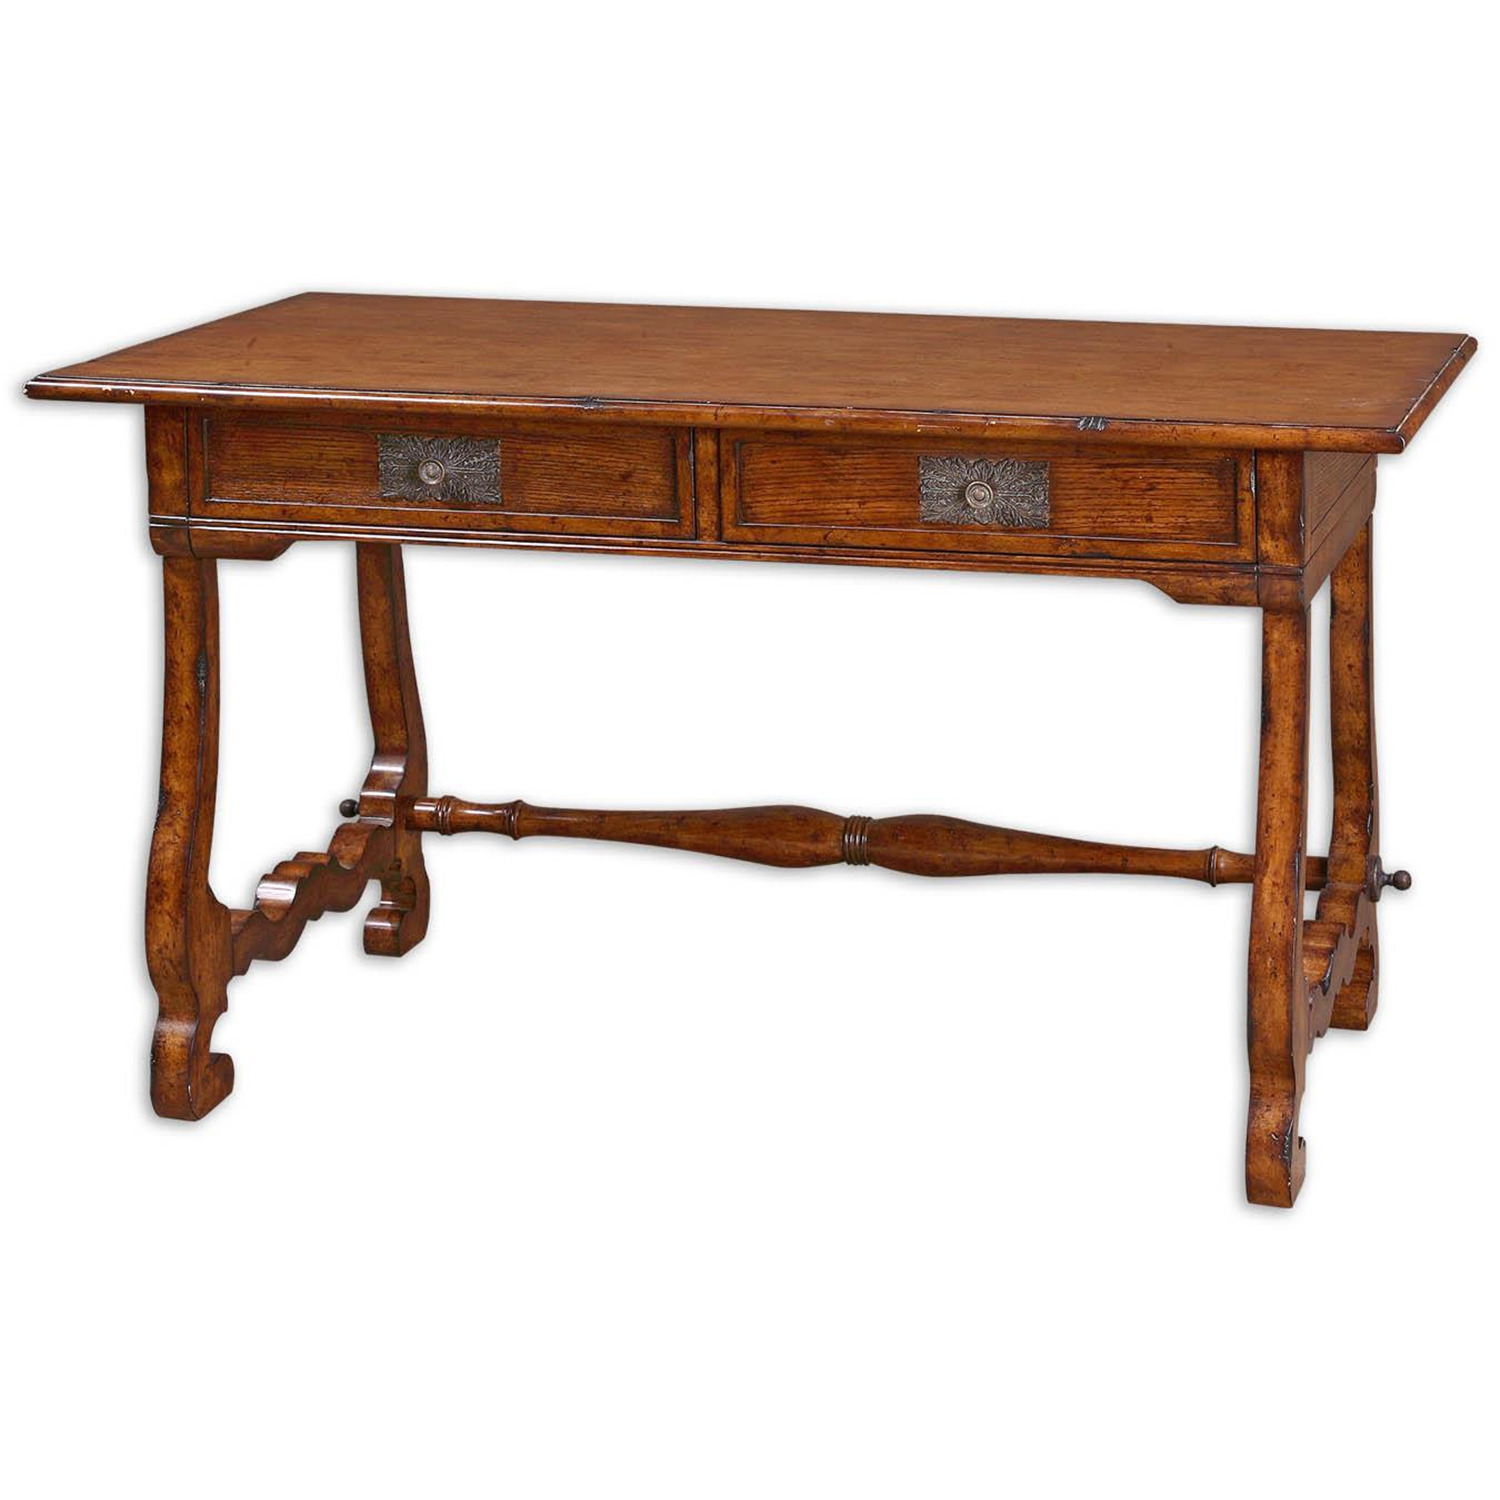 oak writing desks Fd-1100 - contemporary oak 34 writing desk $319 fd-1100 - contemporary oak 34 writing desk 34 w x 22 d x 30 h no drawers finished back fully assembled oak solids.